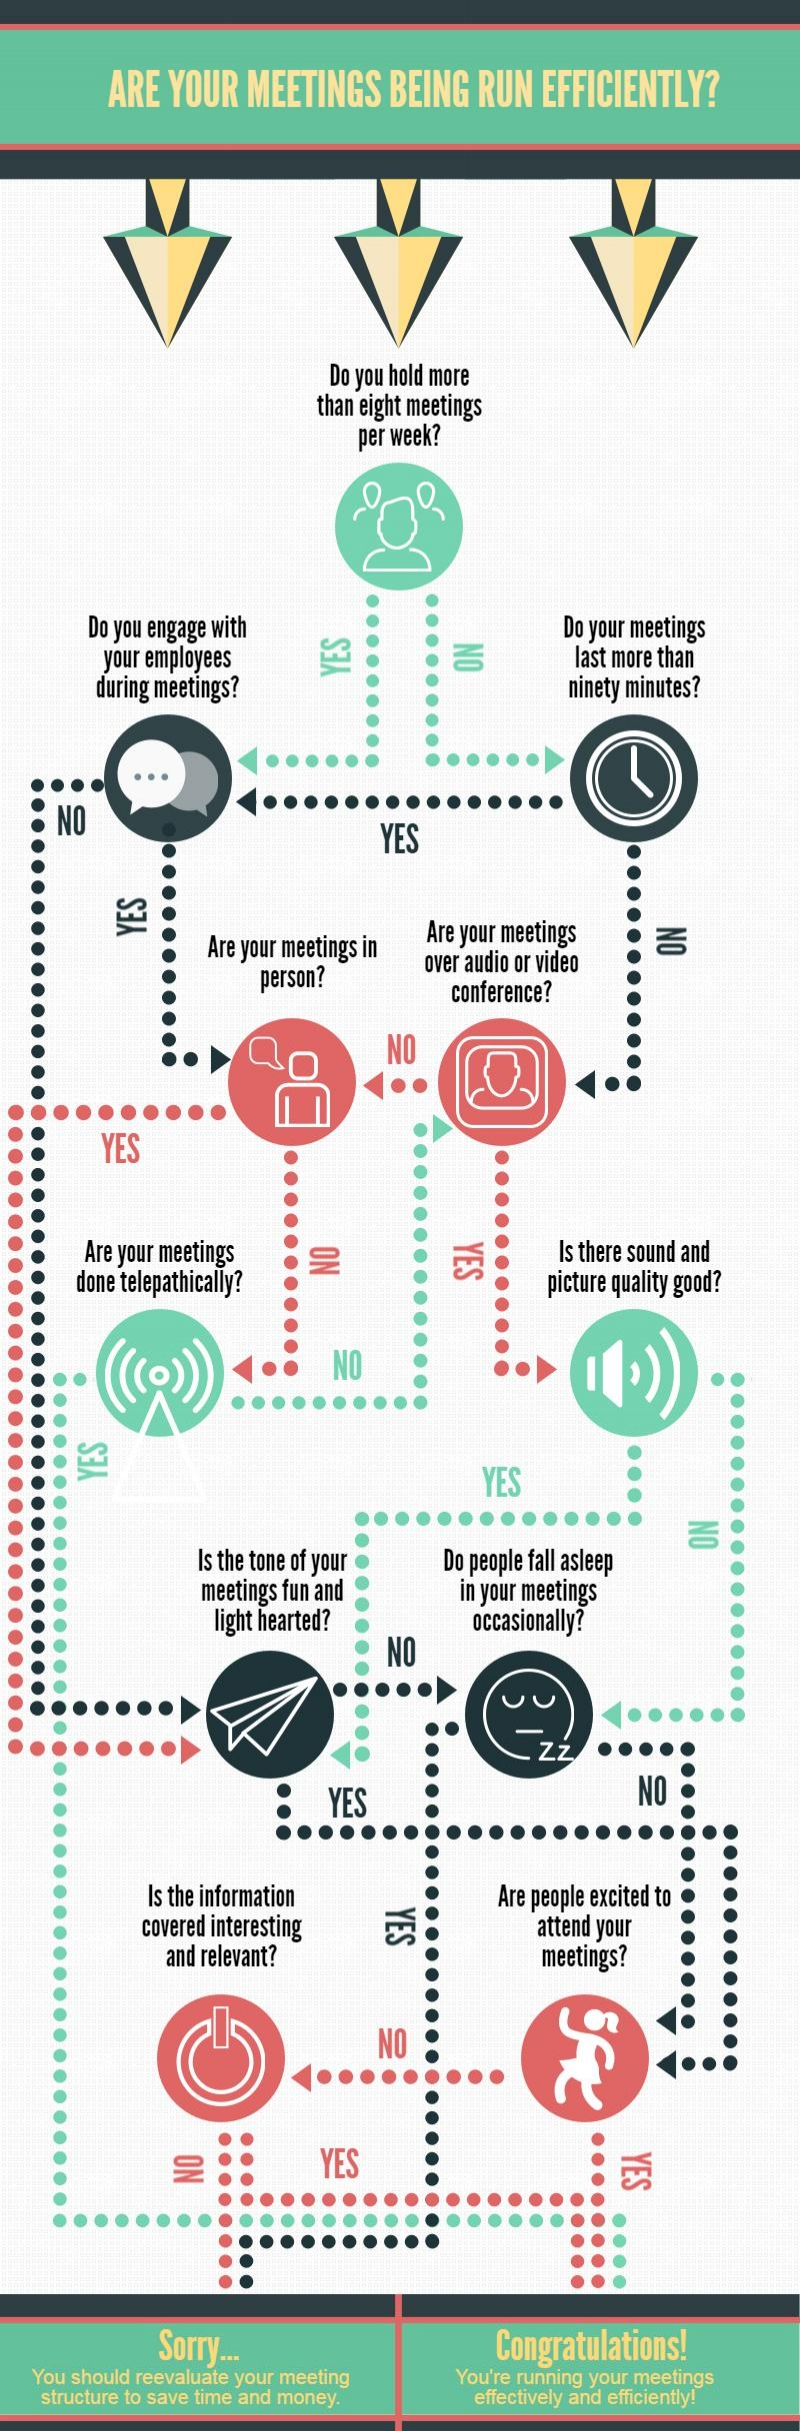 are-your-meetings-being-run-efficiently-infographic